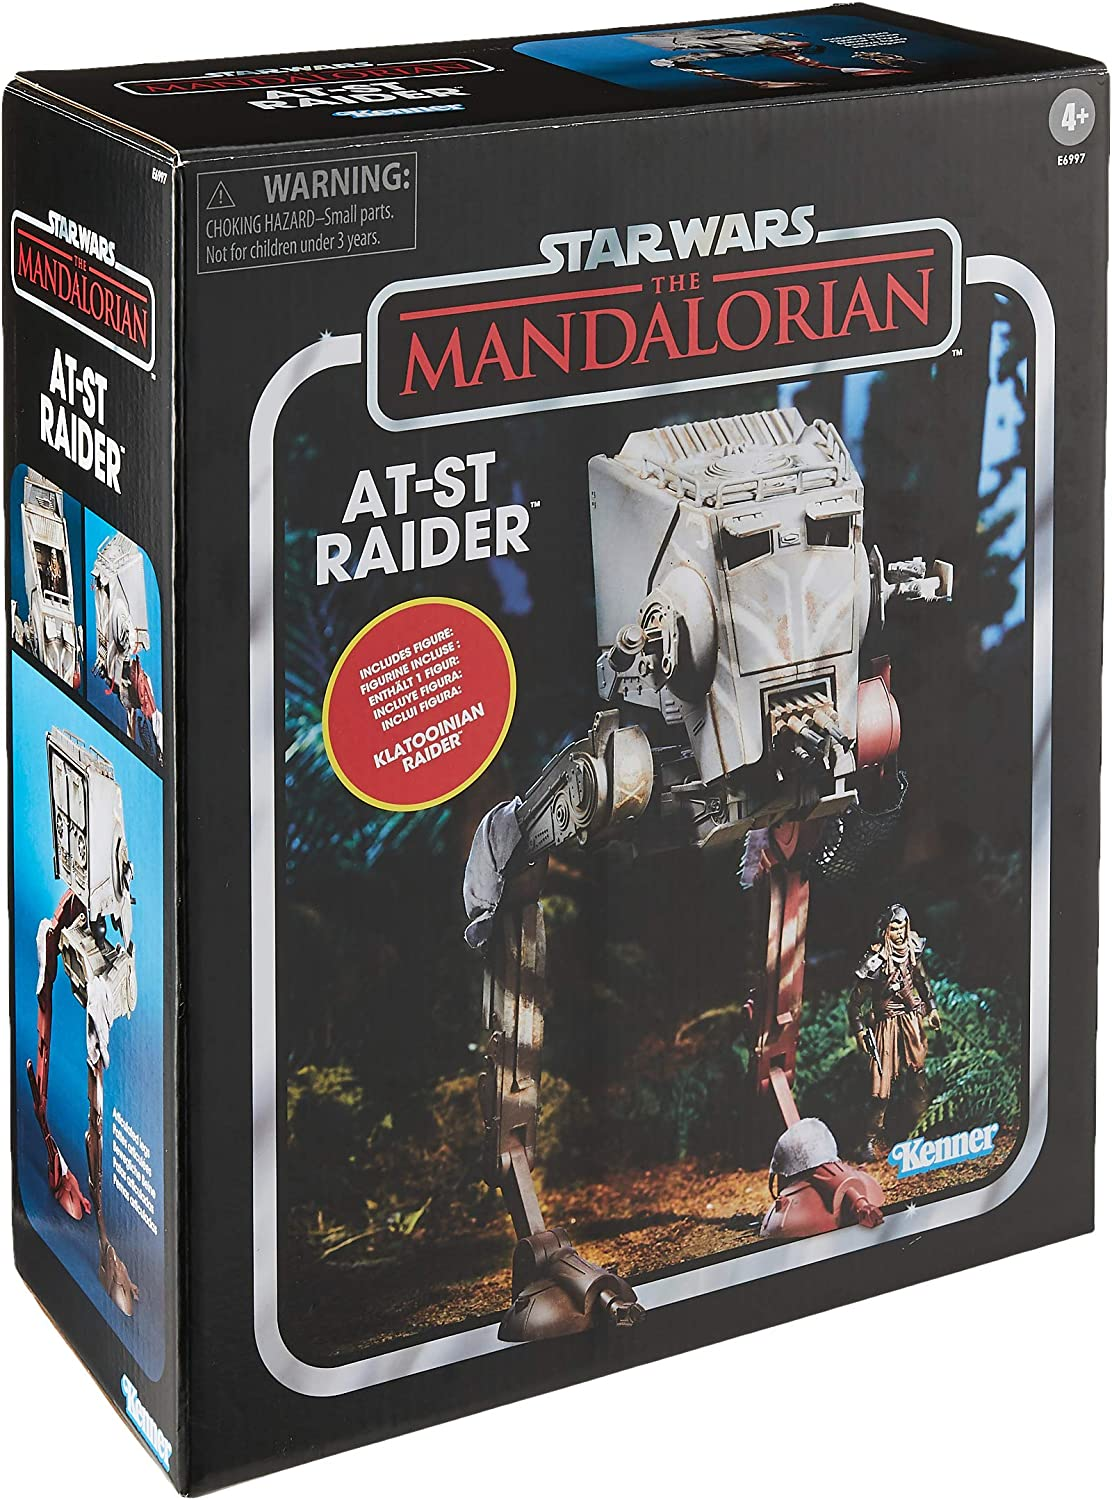 Amazon.com: Star Wars AT-ST Raider - Escala Mandaloriana ...